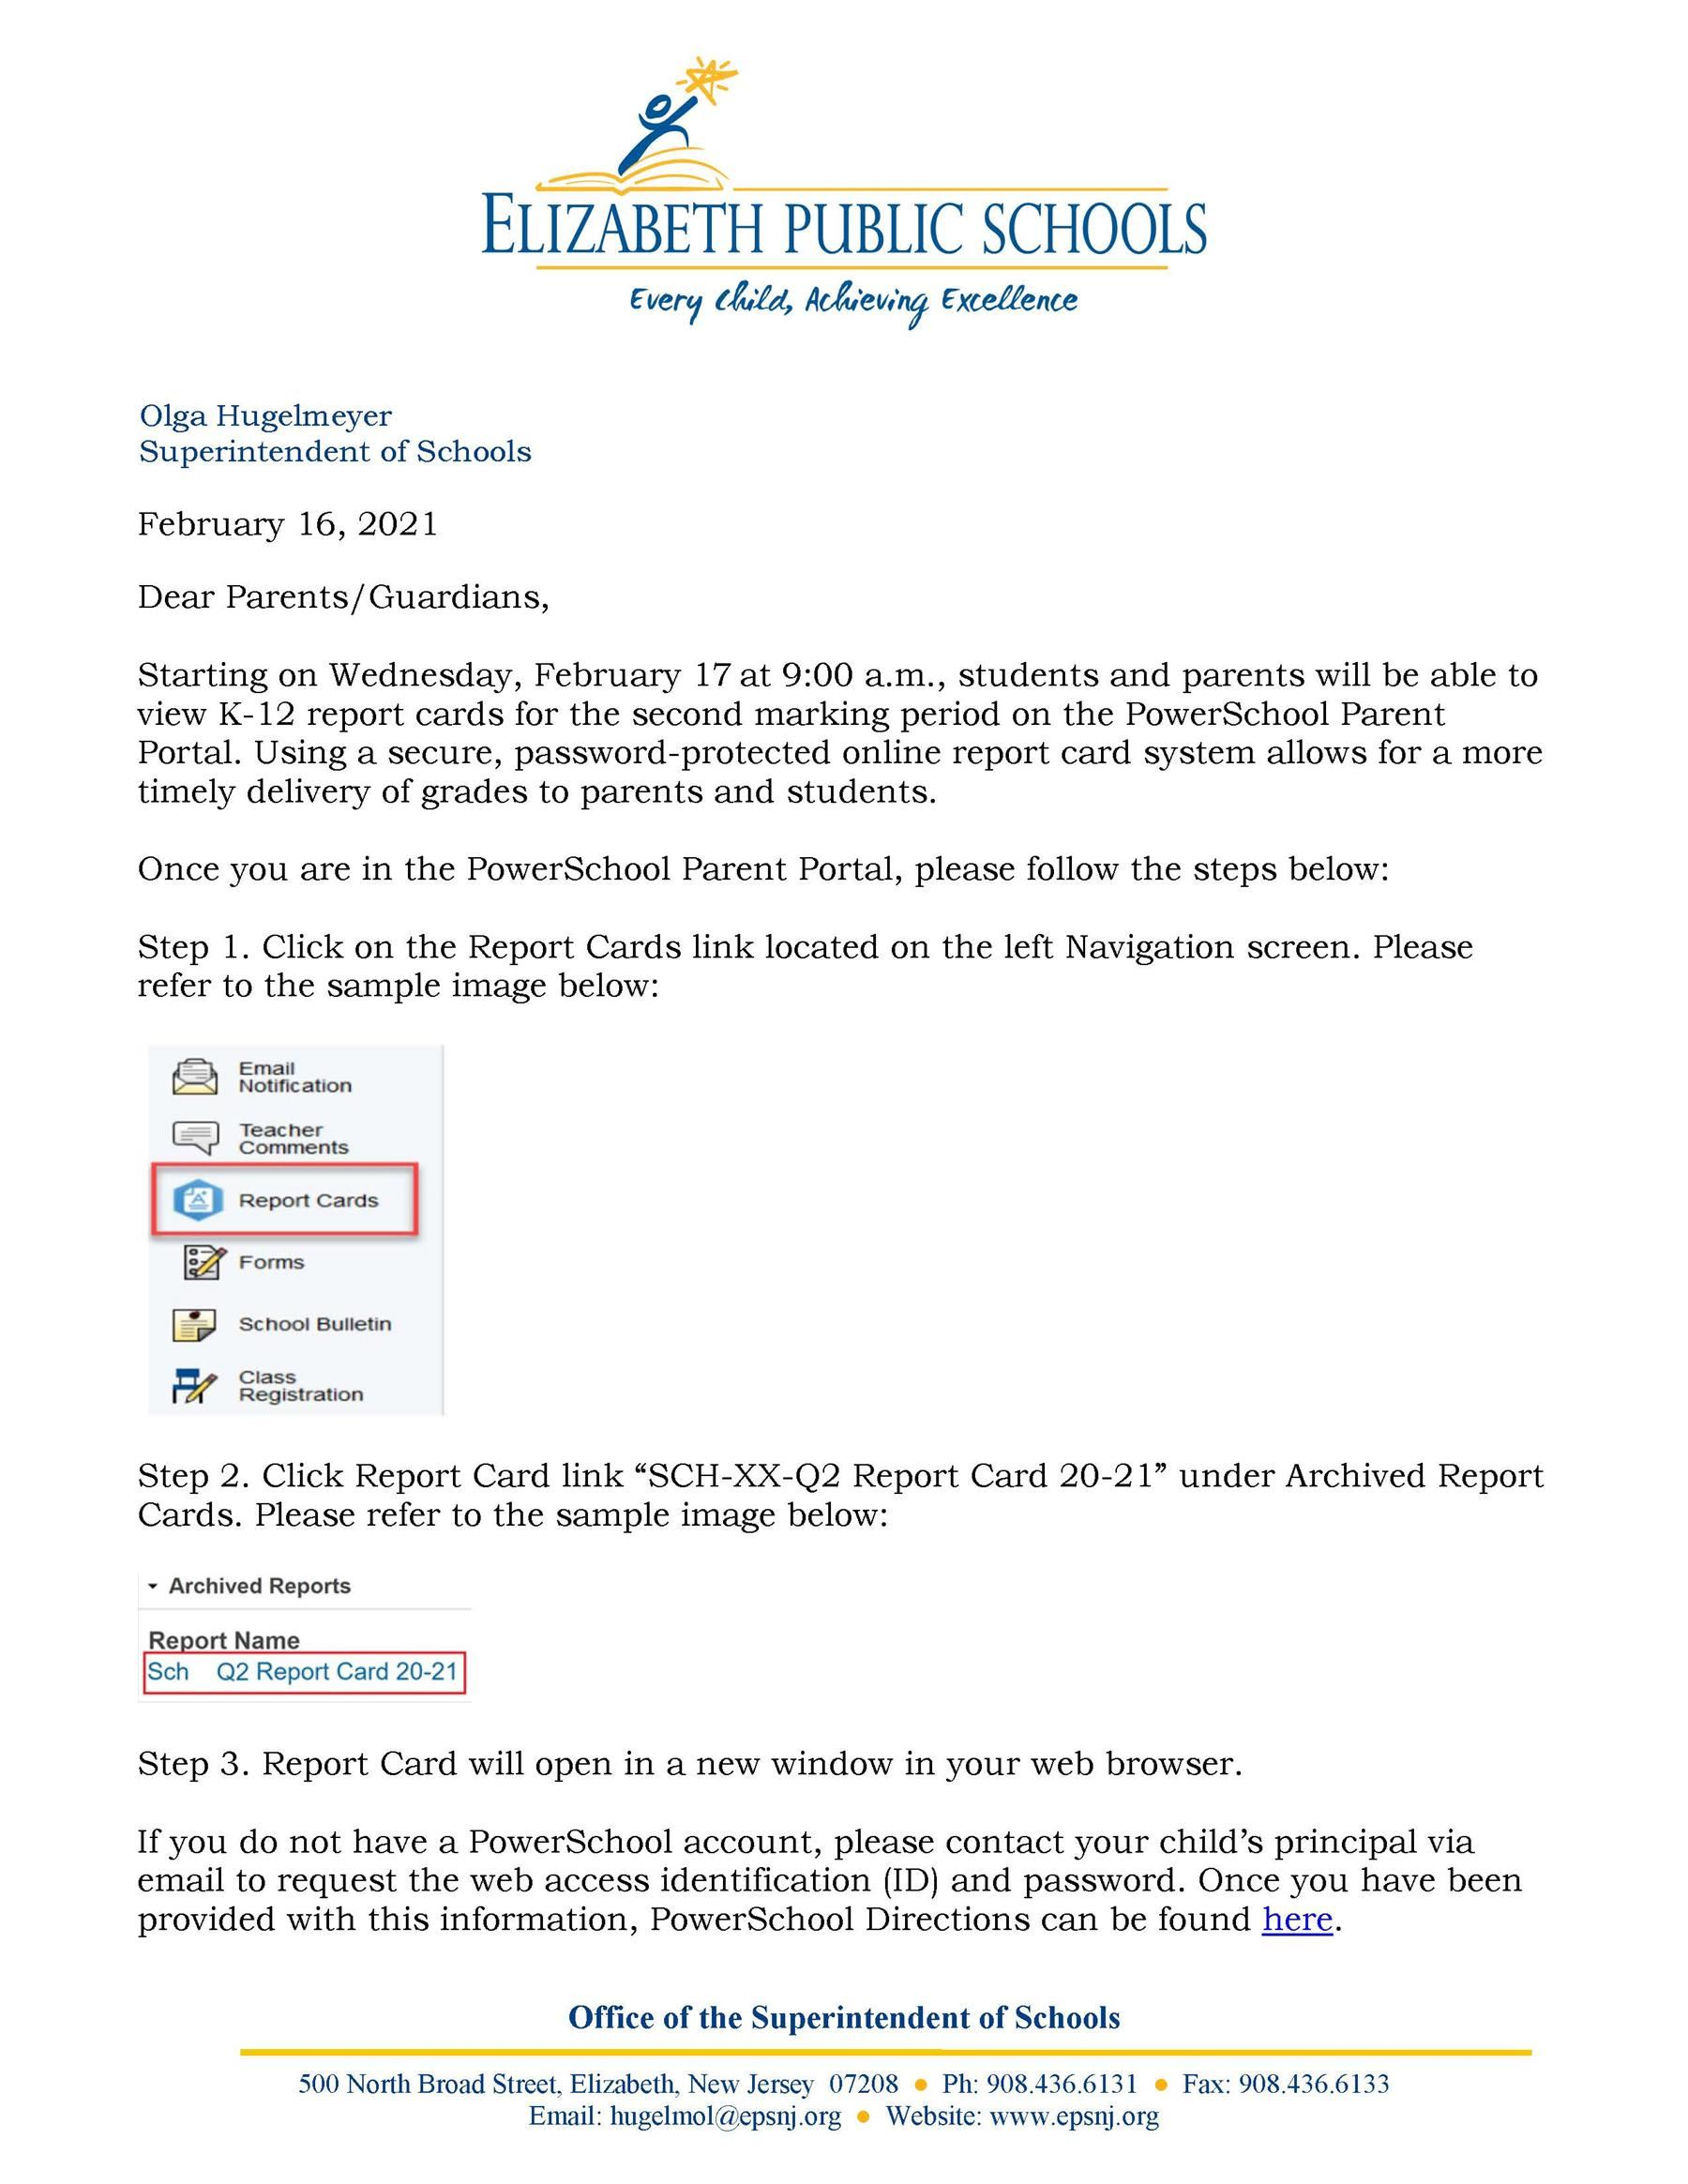 Letter to Parents-Guardians- Second Marking Period Report Cards Available on PowerSchool- 2-16-21